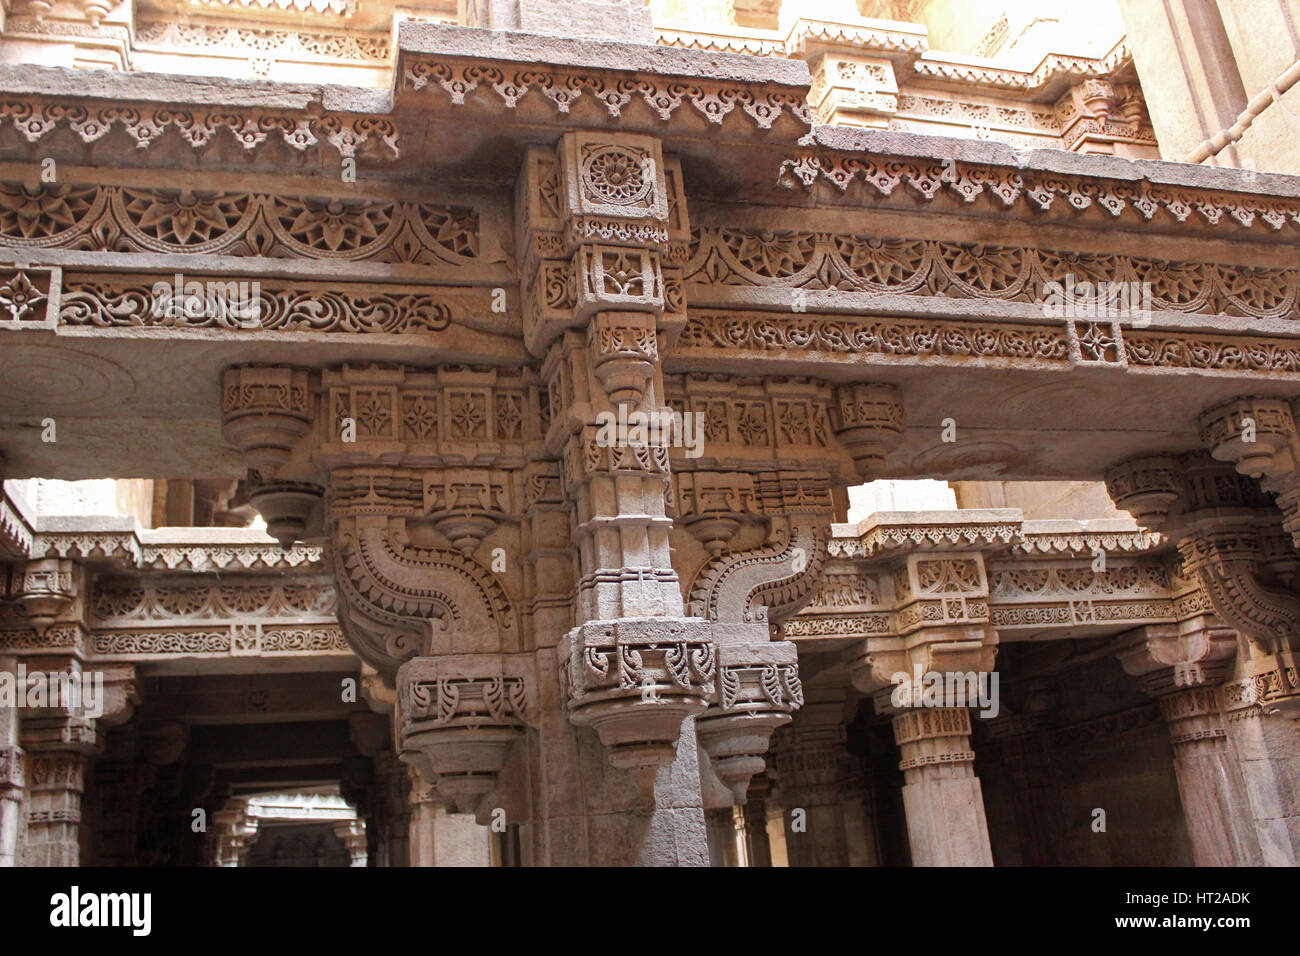 Entablature style architecture intricate carvings. Adalaj Stepwell, Ahmedabad, Gujarat, India - Stock Image